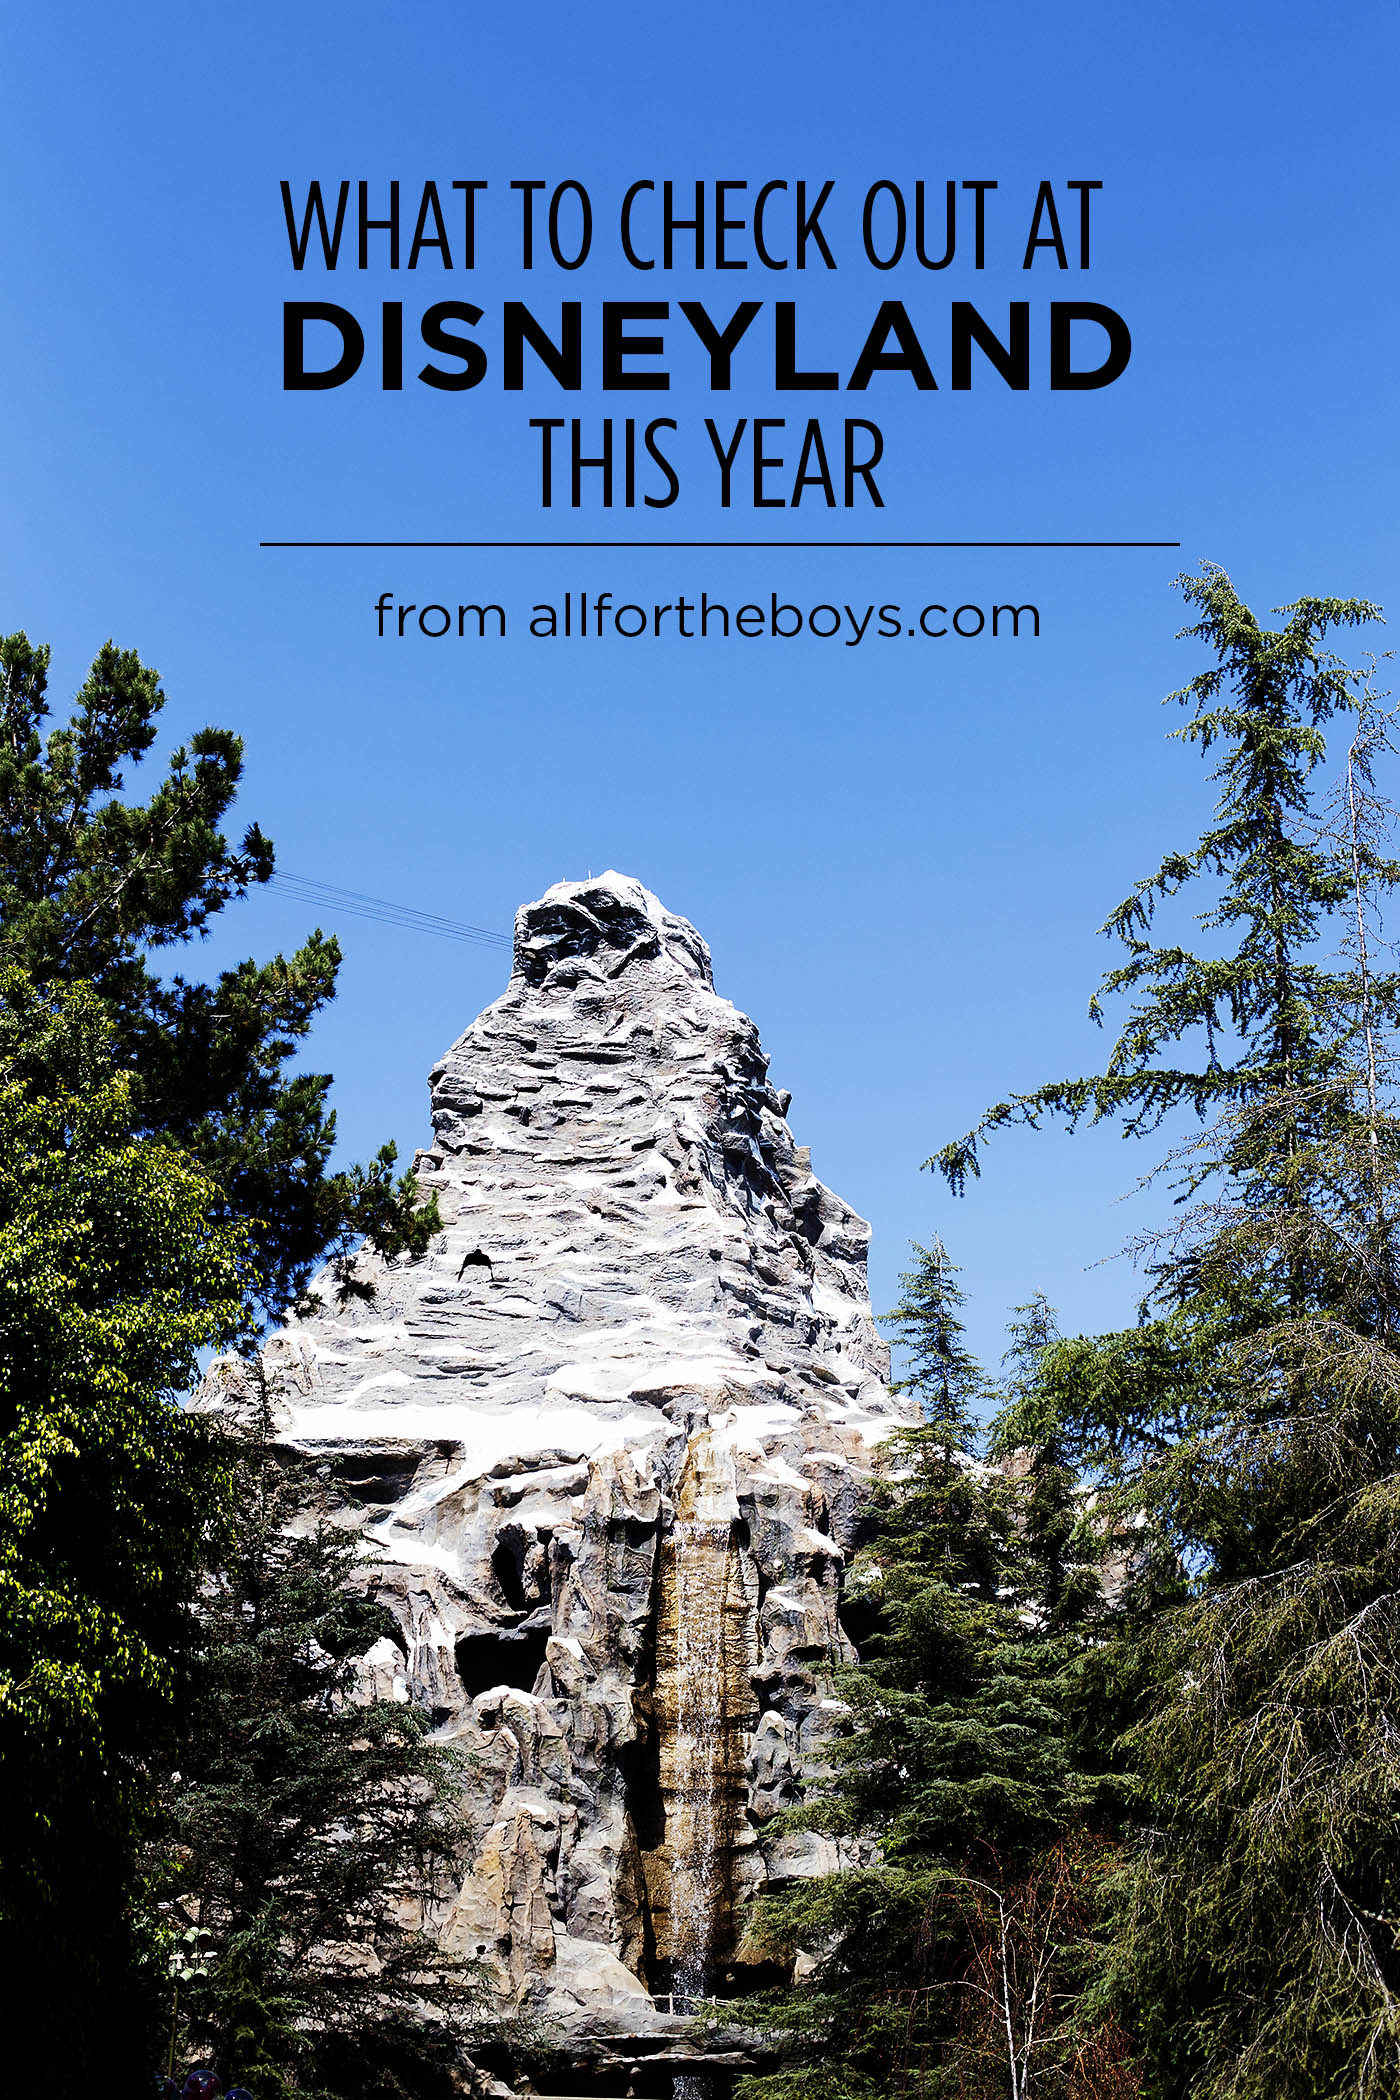 List of awesome new updates and things to check out at Disneyland this year during the Diamond Celebration!